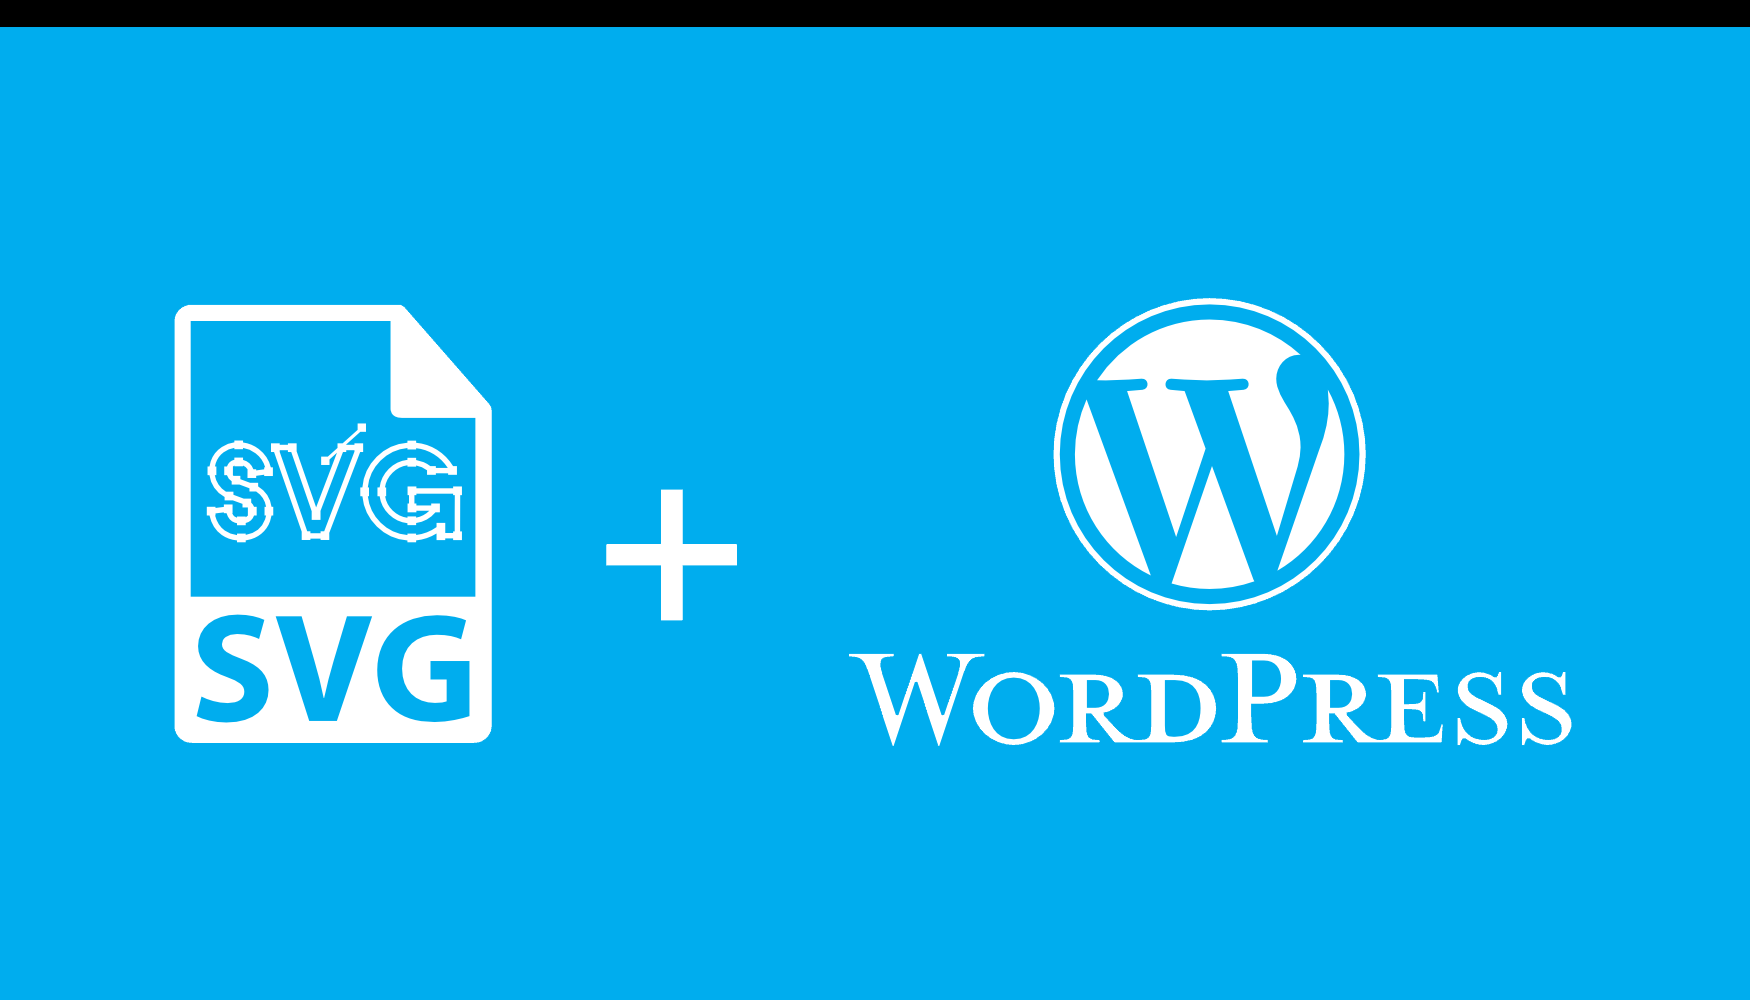 Come aggiungere SVG a WordPress